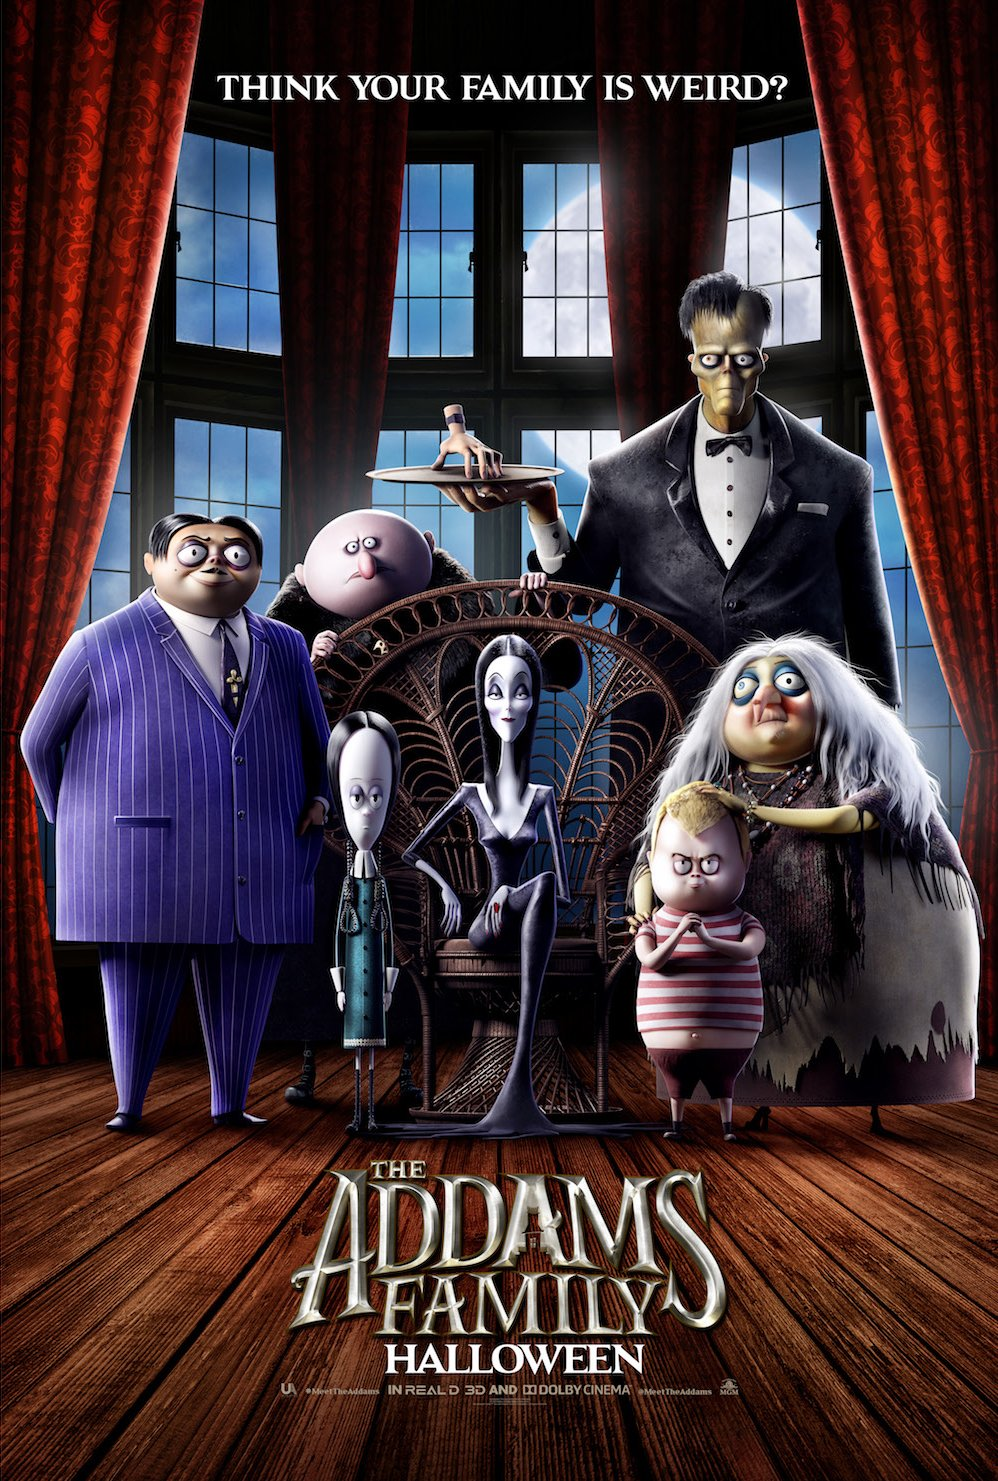 the-addams-family-animated-film-gets-a-new-poster